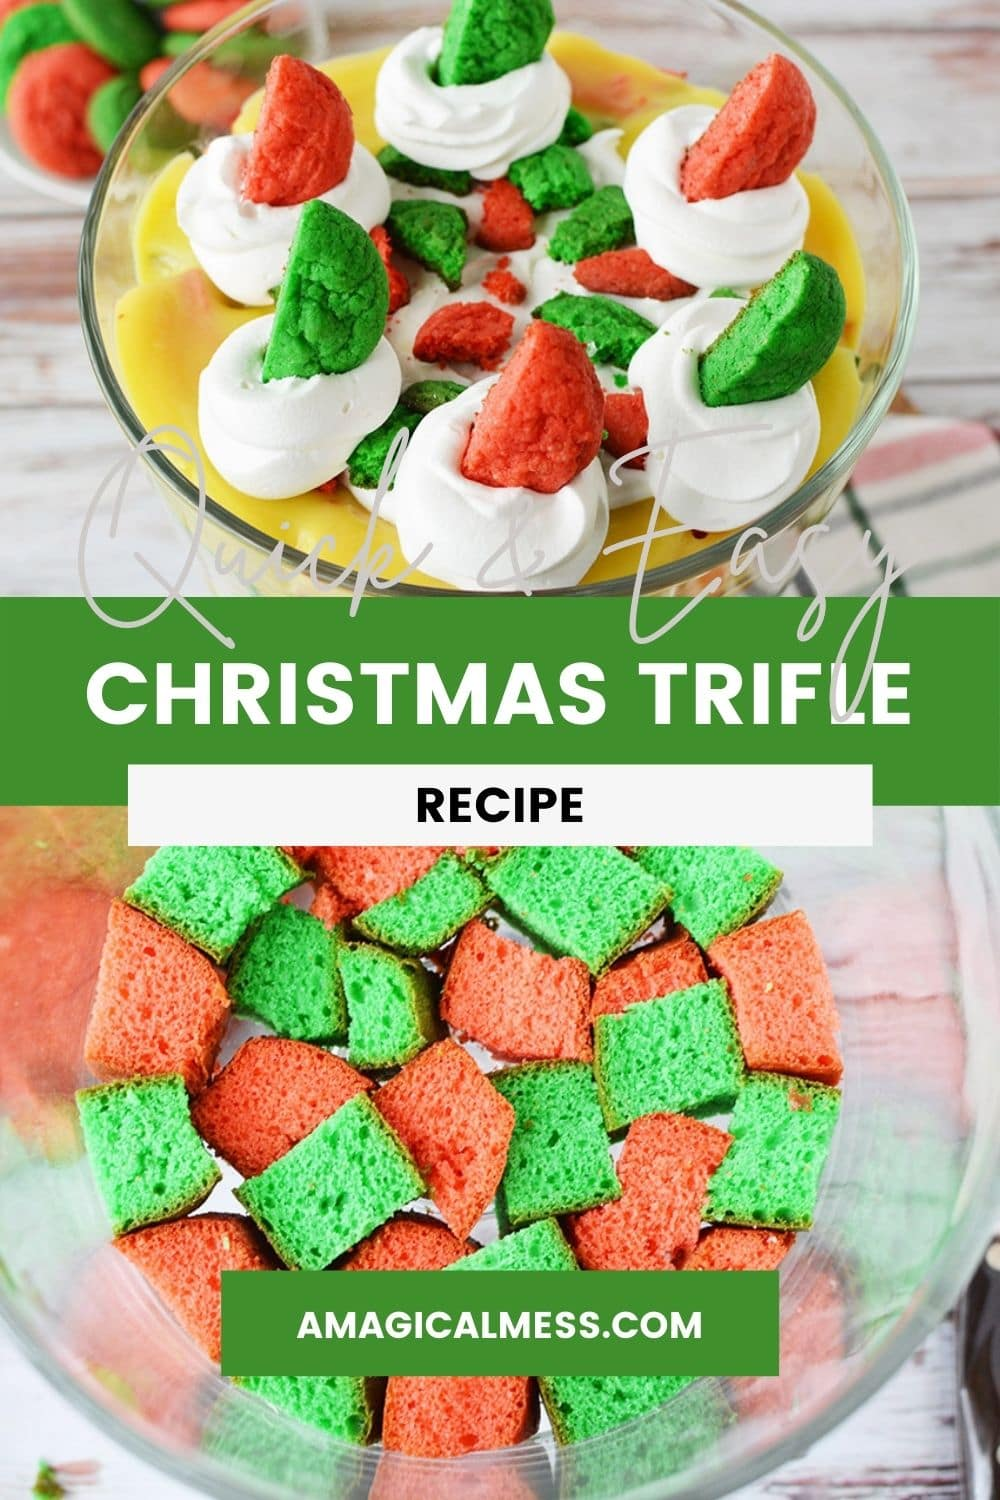 Red and green cake and completed Christmas trifle